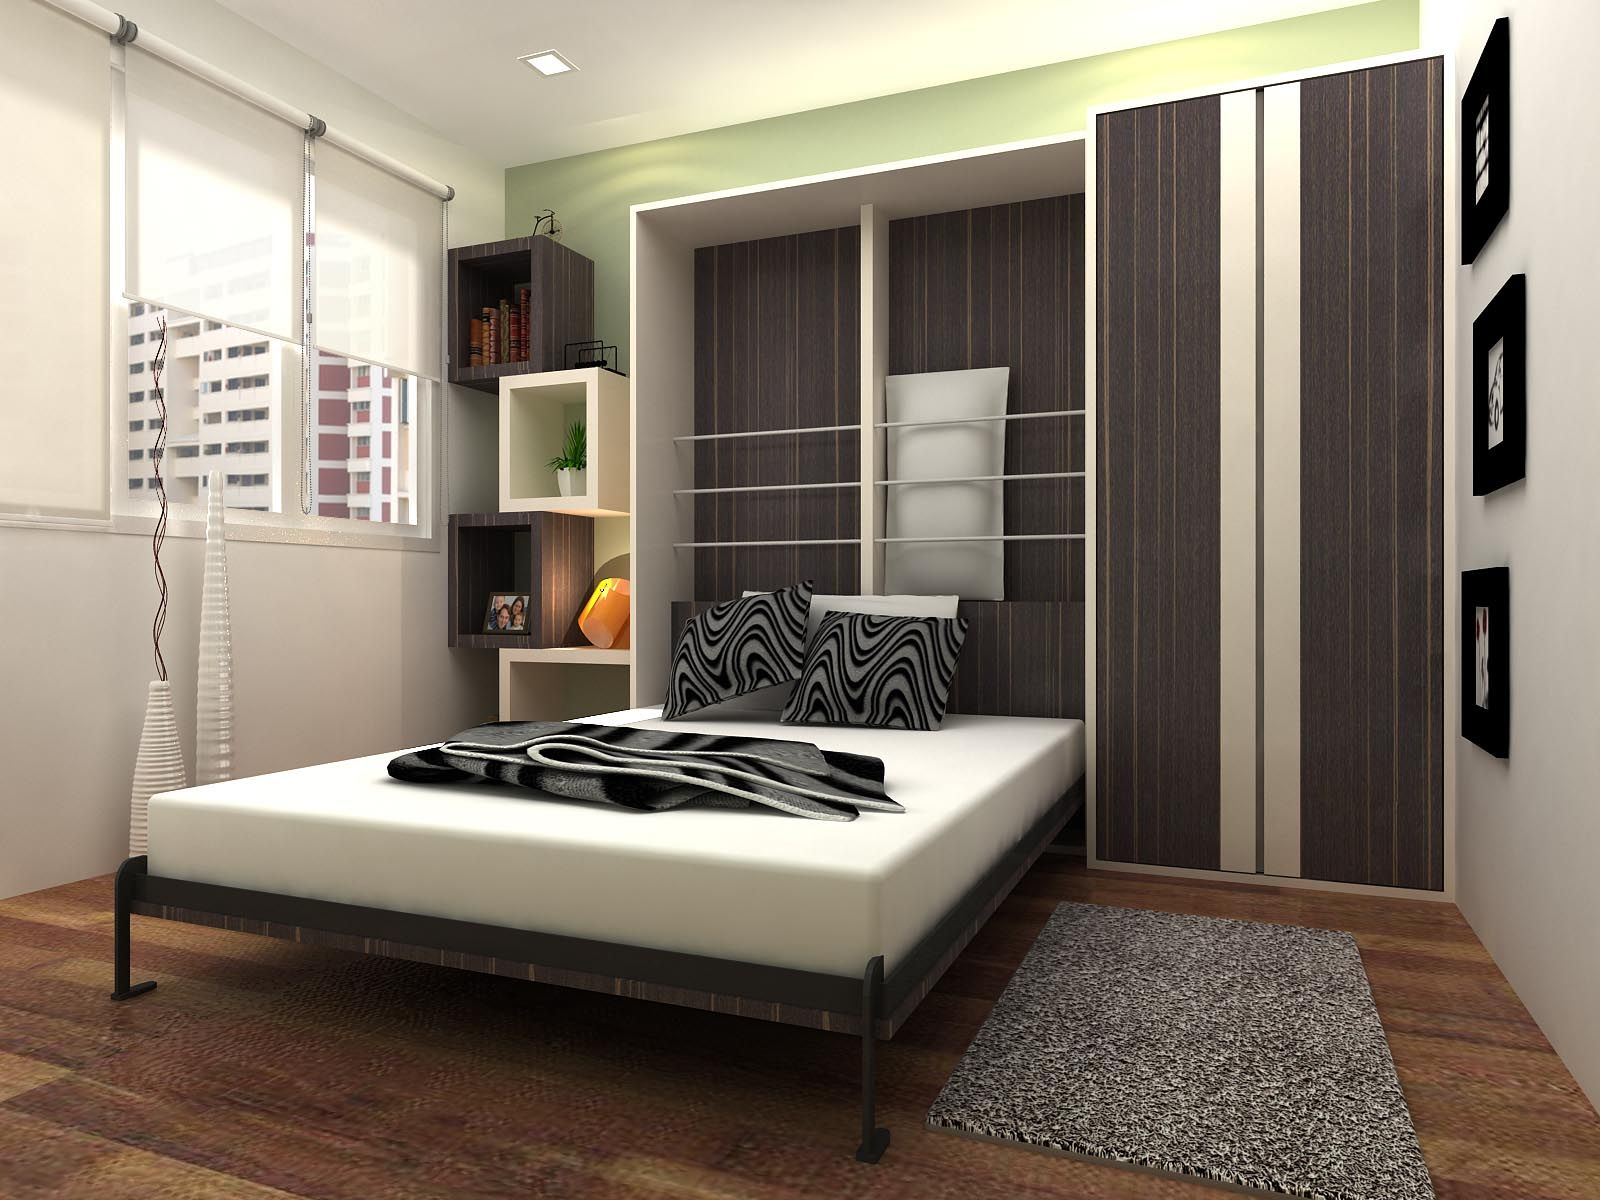 wall bed small room pinterest wall beds small rooms wall bed wall bedssmall rooms amipublicfo Image collections